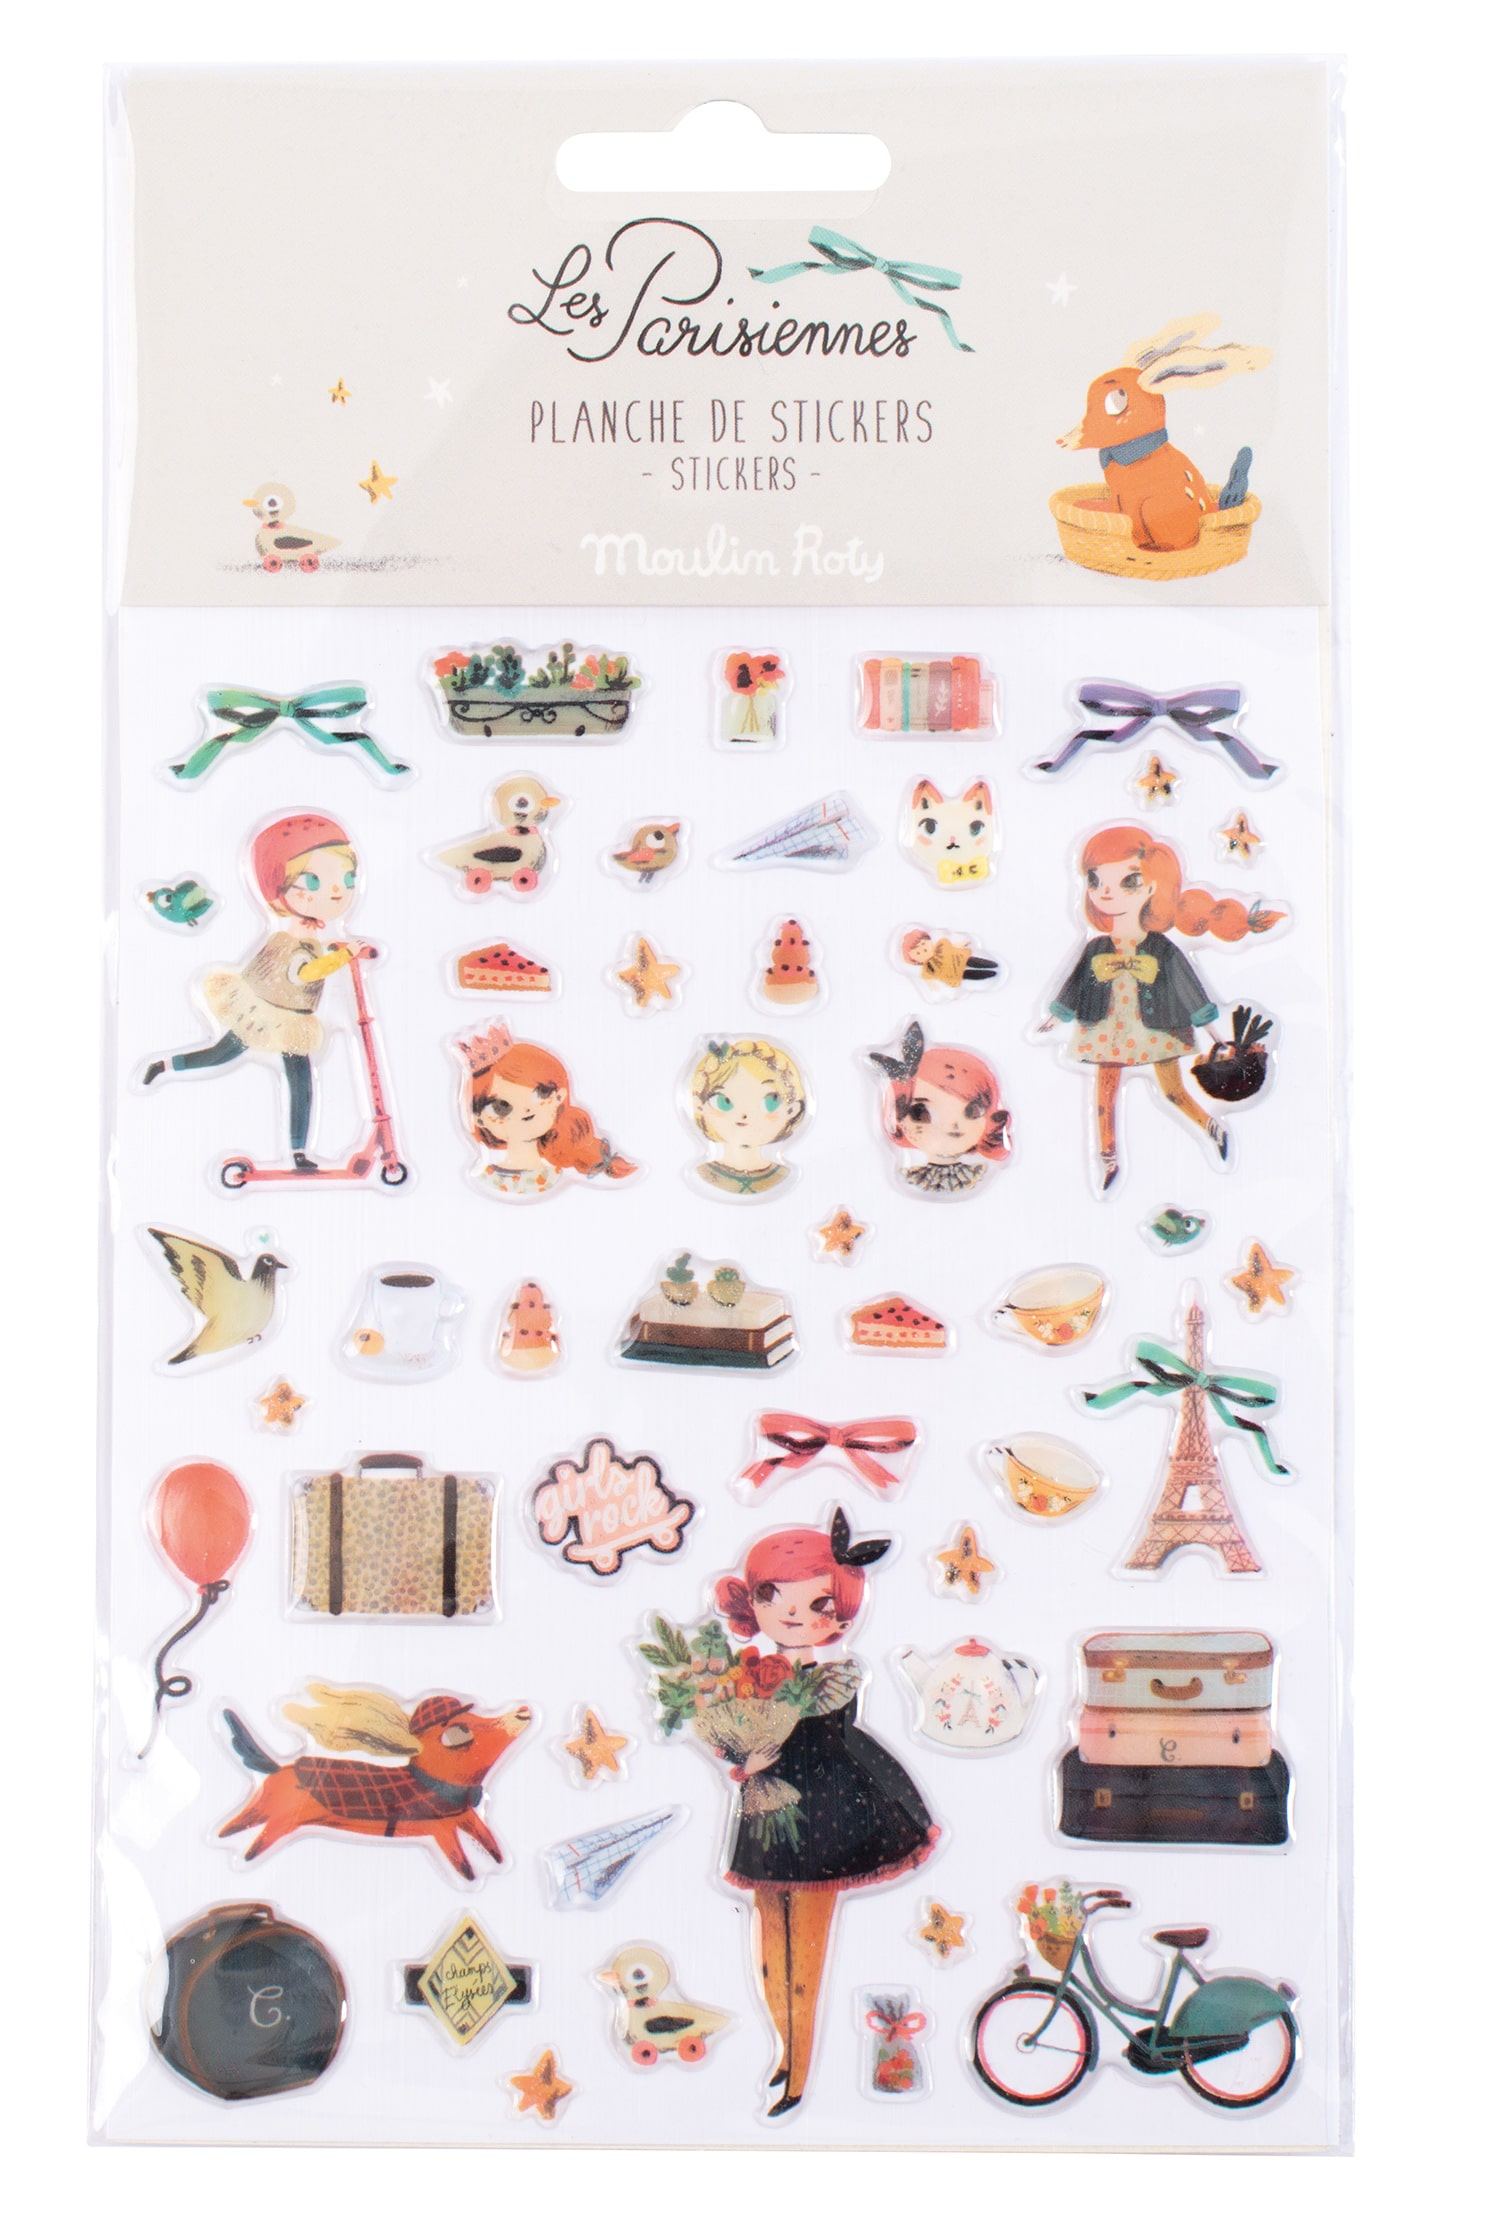 Stickers sheet of Les Parisienne dolls and french icons - Moulin Roty 642558